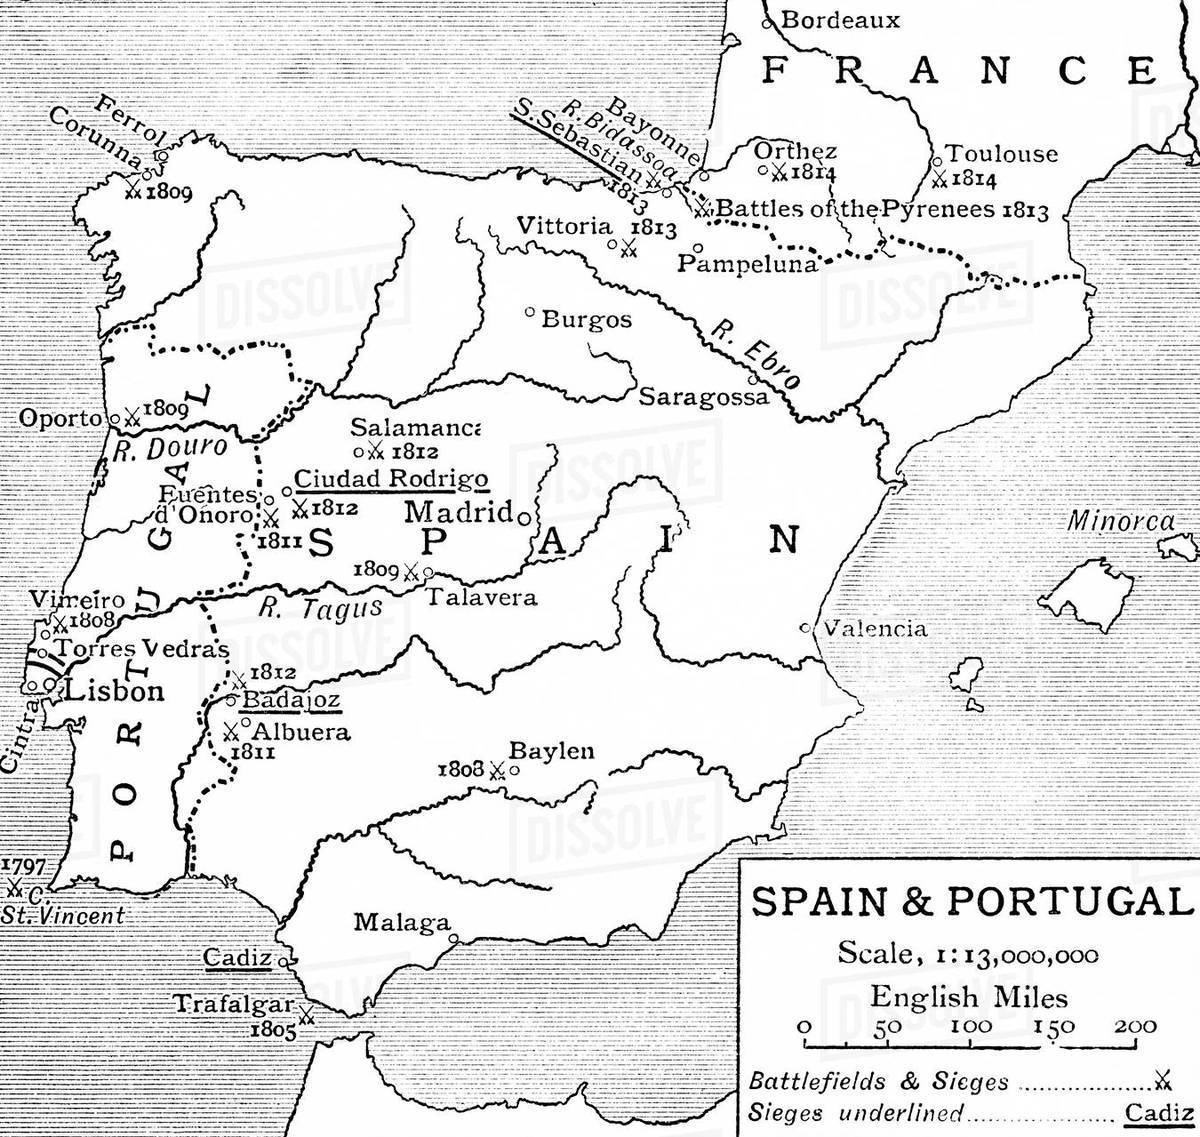 Map Of Spain 1930.Map Of Spain And Portugal At The Time Of The Peninsular War From The Story Of England Published 1930 Stock Photo